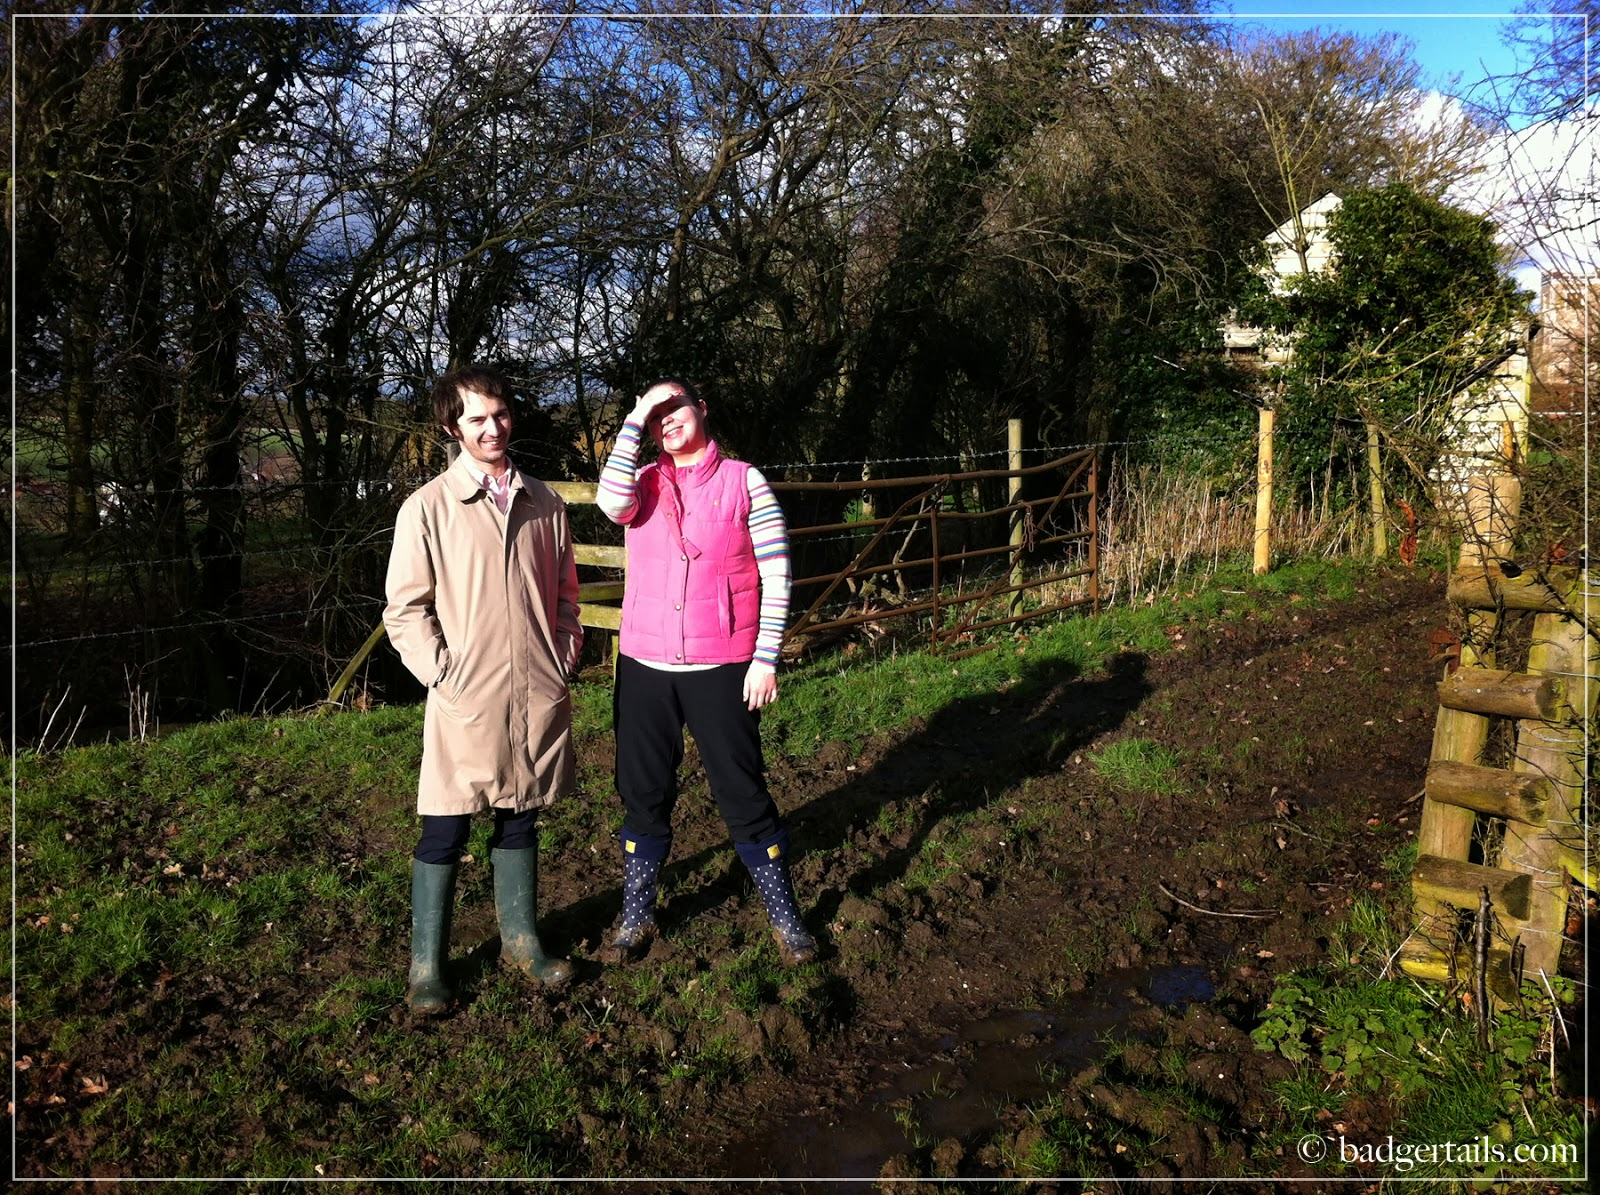 couple stood smiiling in sunny english countryside field